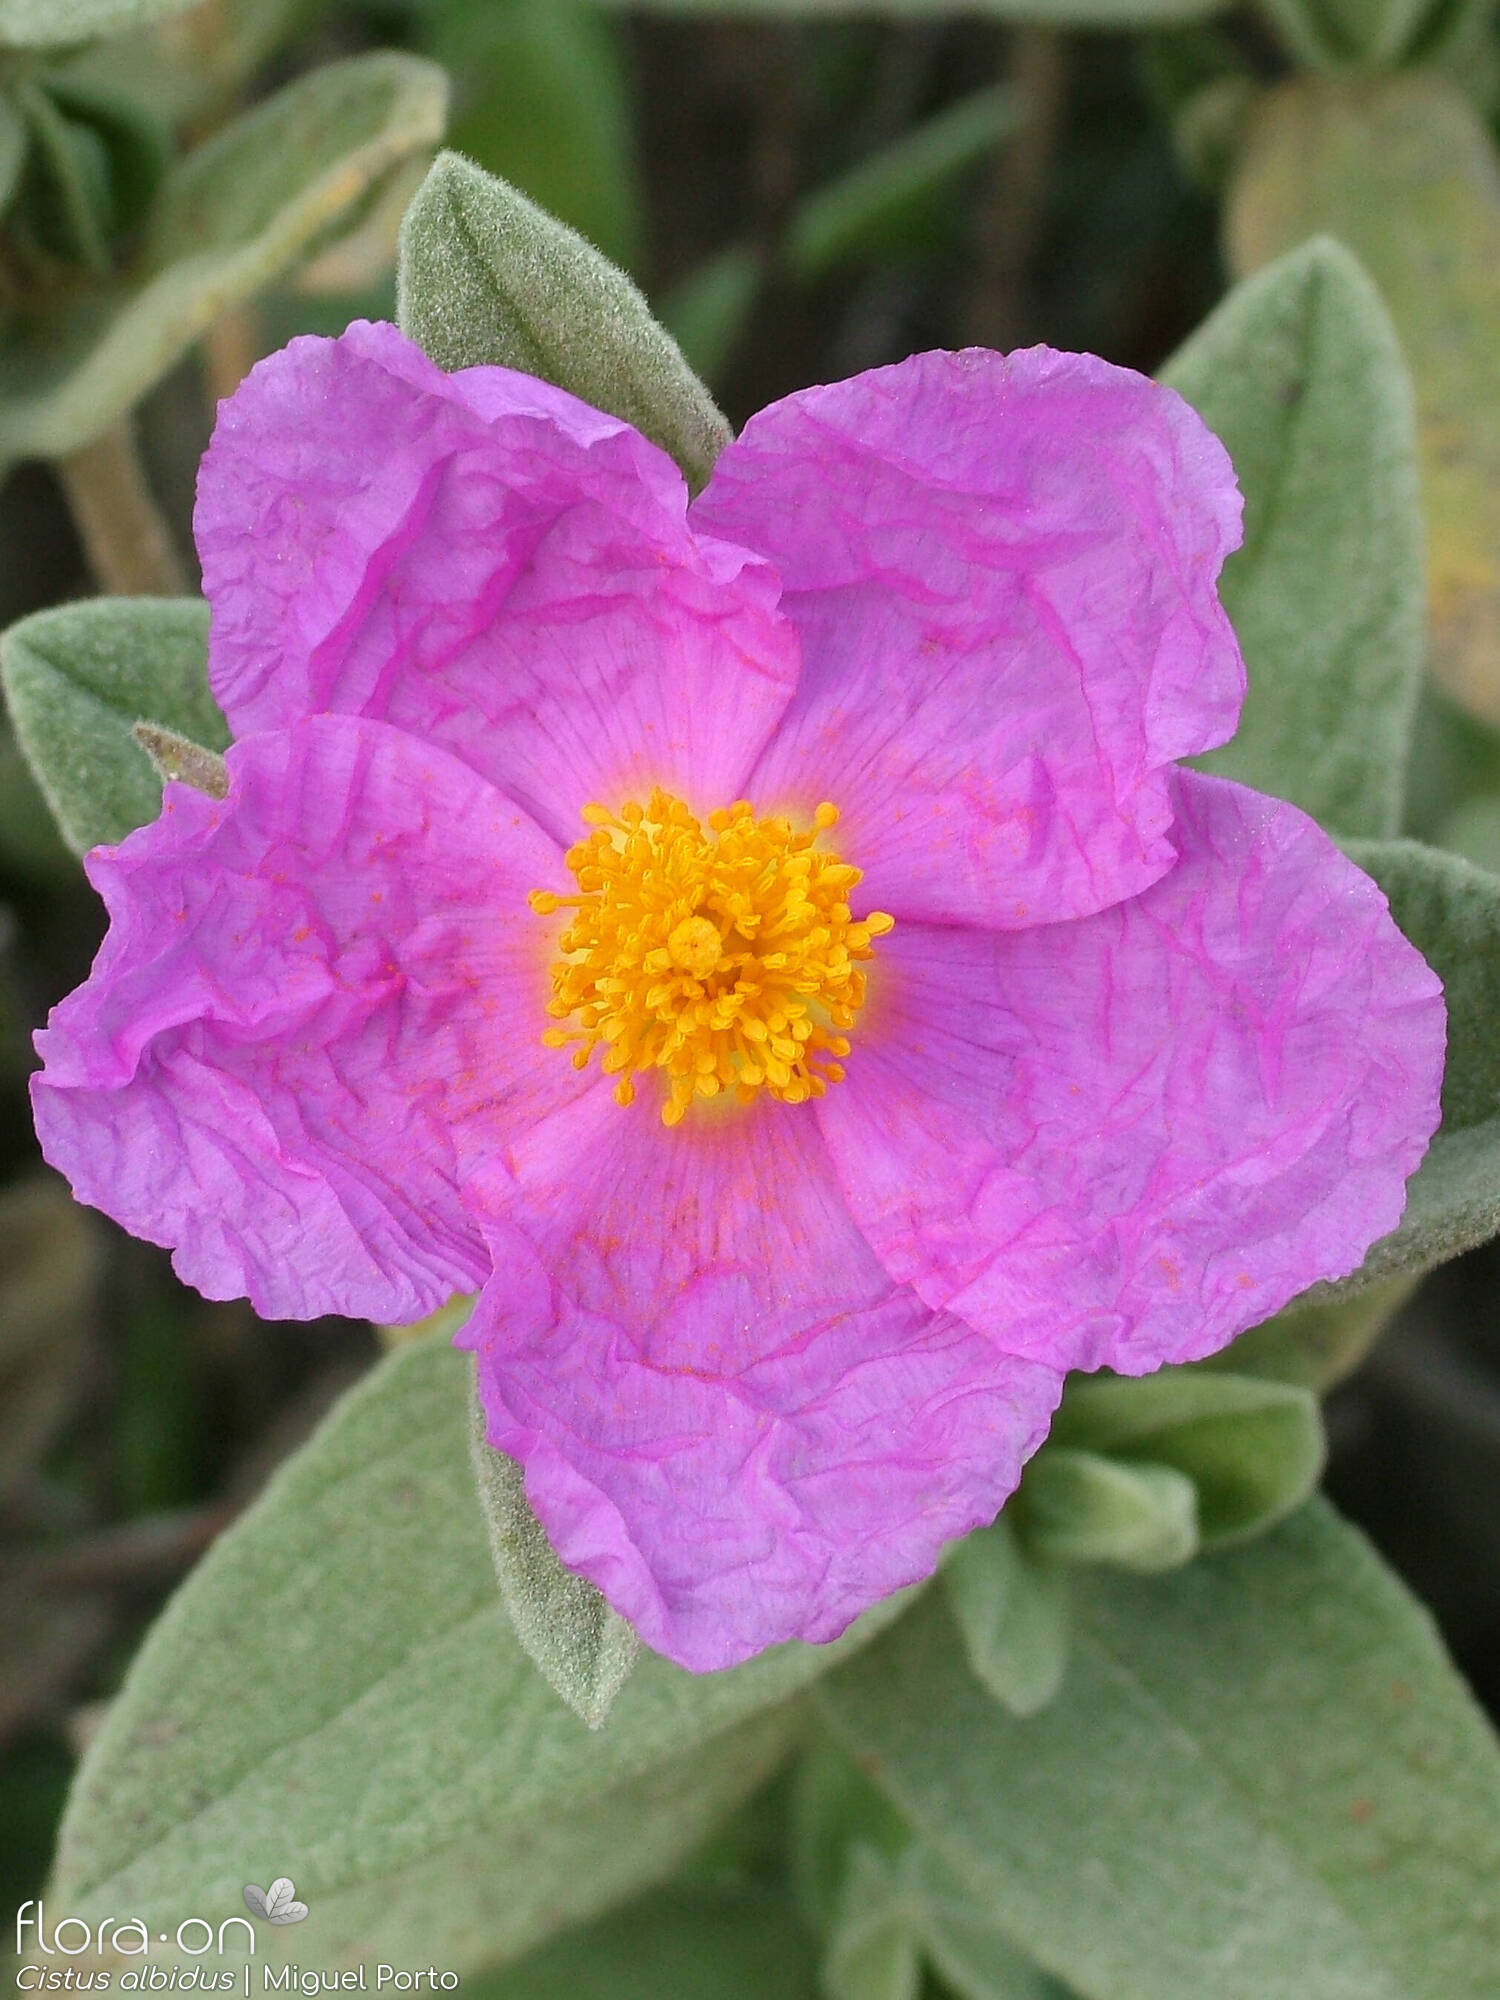 Cistus albidus - Flor (close-up) | Miguel Porto; CC BY-NC 4.0